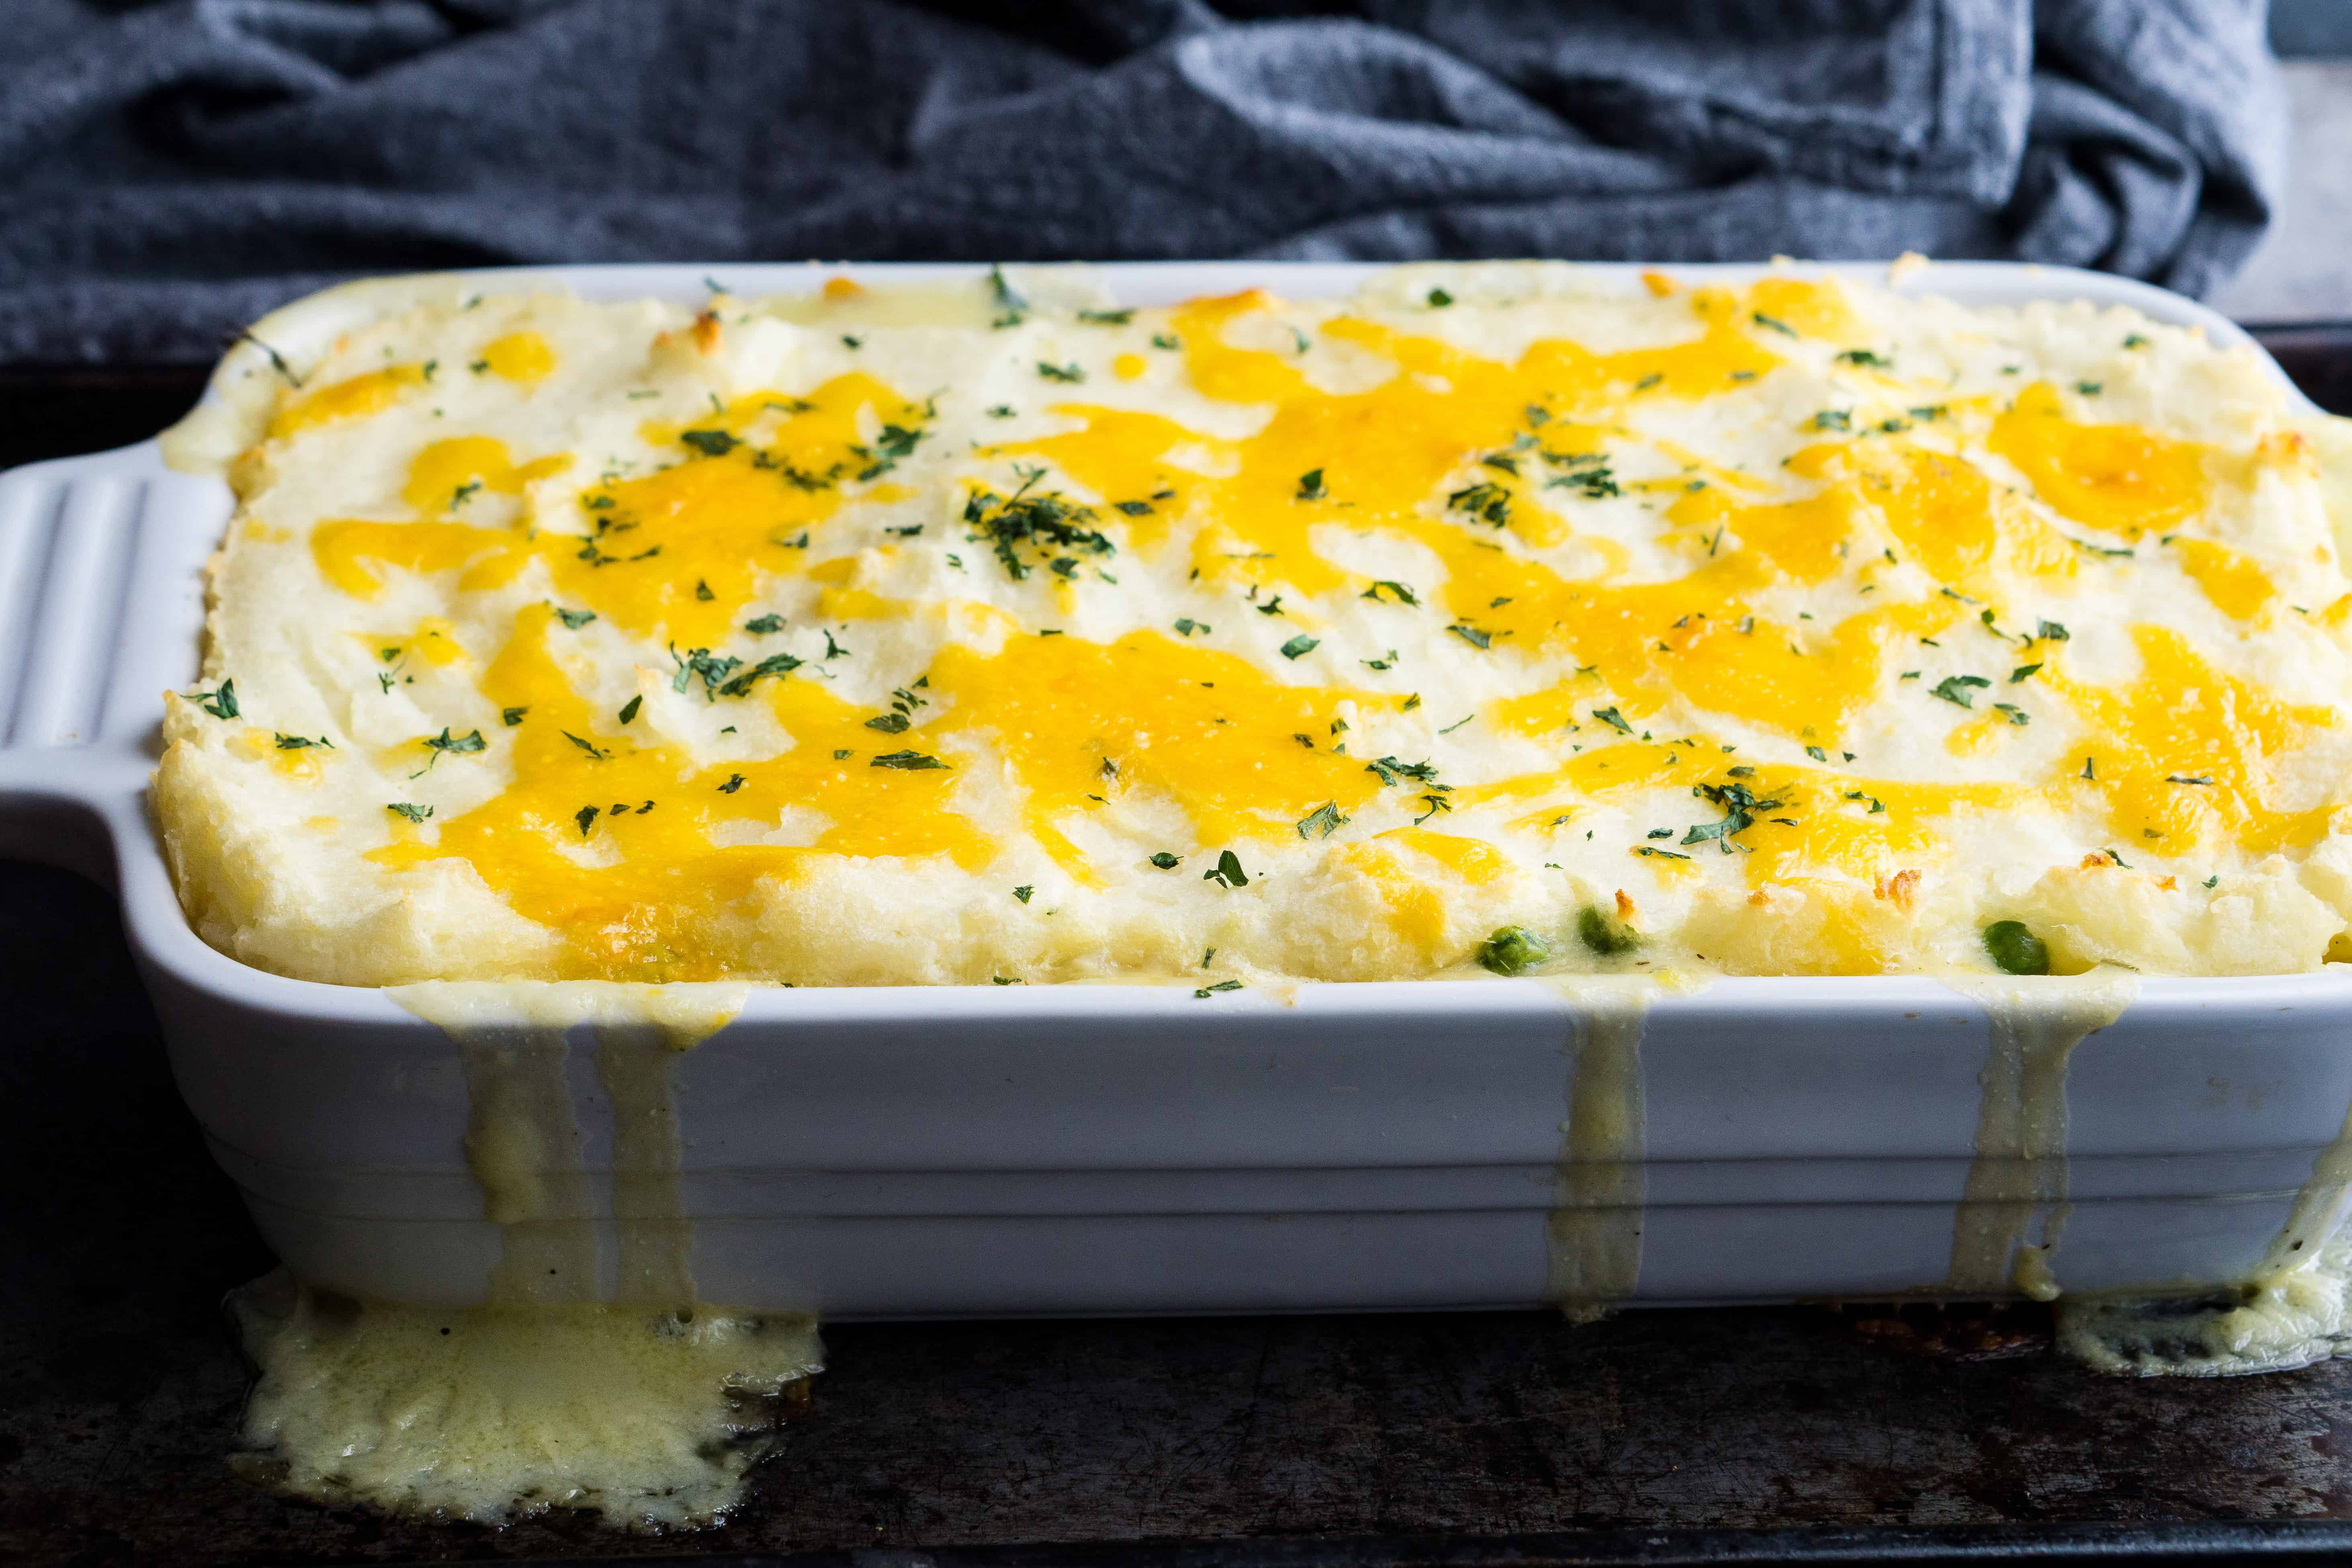 Shepherd's pie in white ceramic baking dish with cheese dripping down the sides